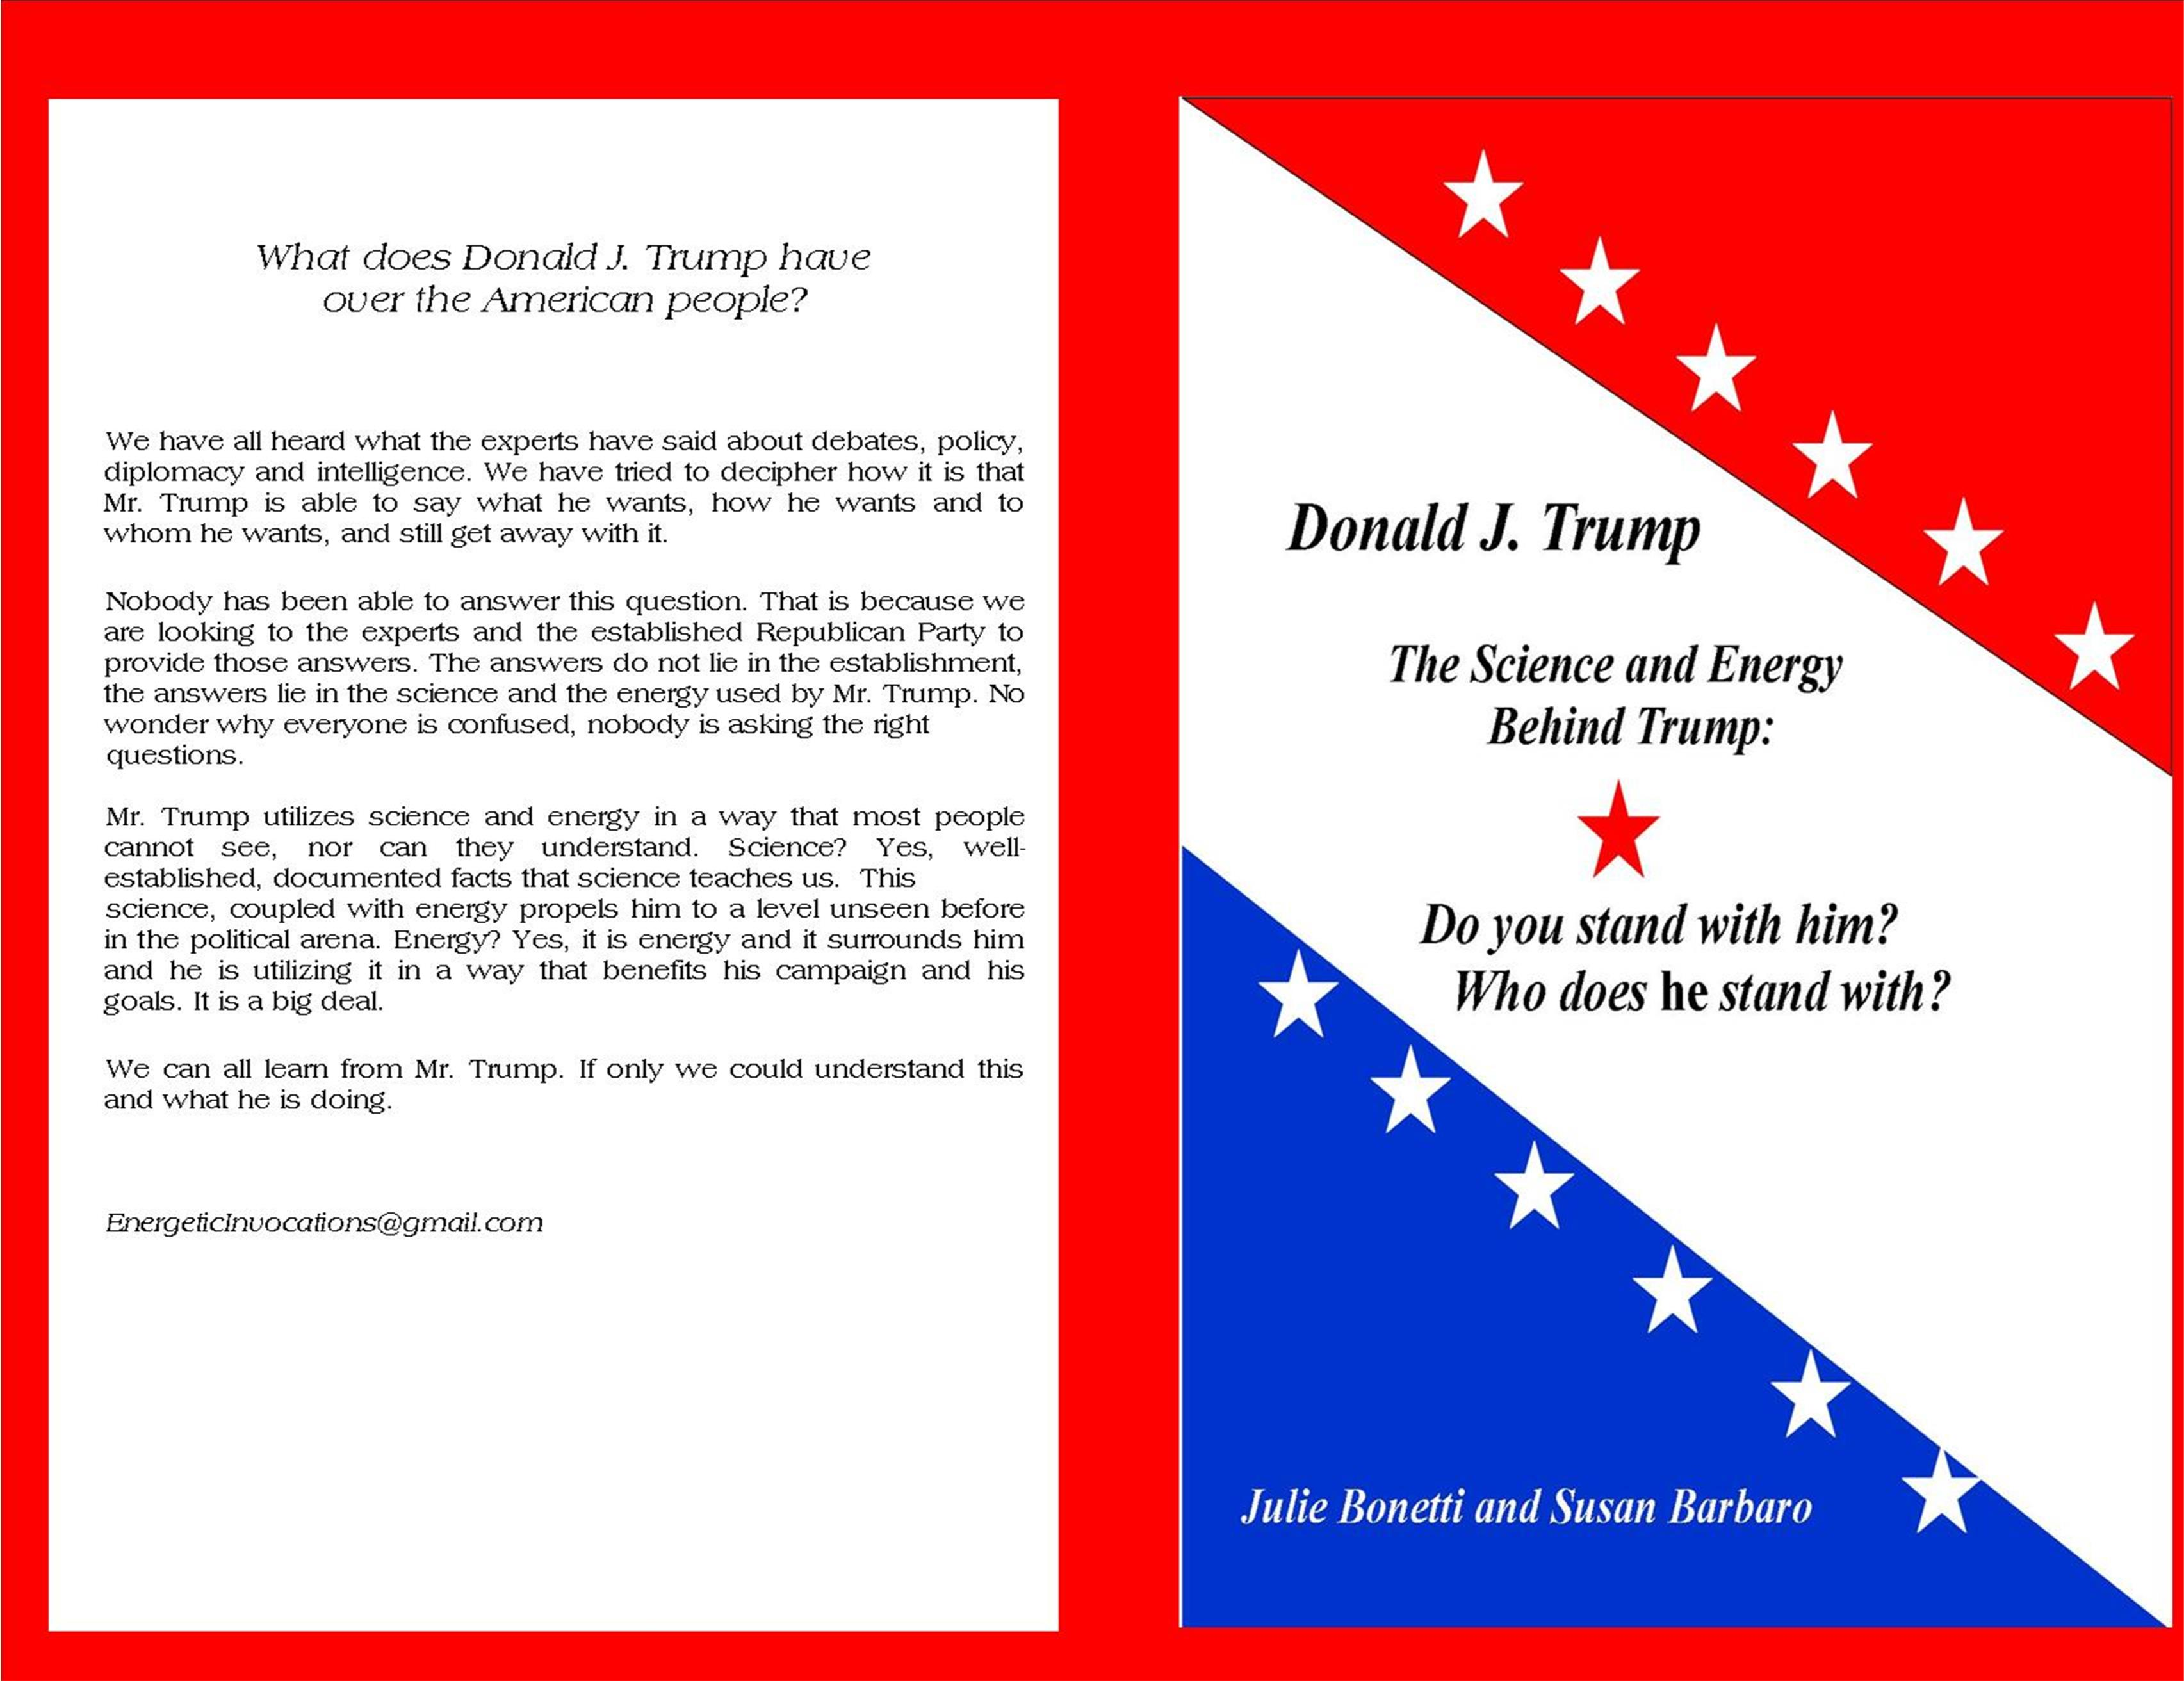 Donald J. Trump: Do you stand with him? Who does he stand with? The Science and Energy Behind Trump cover image